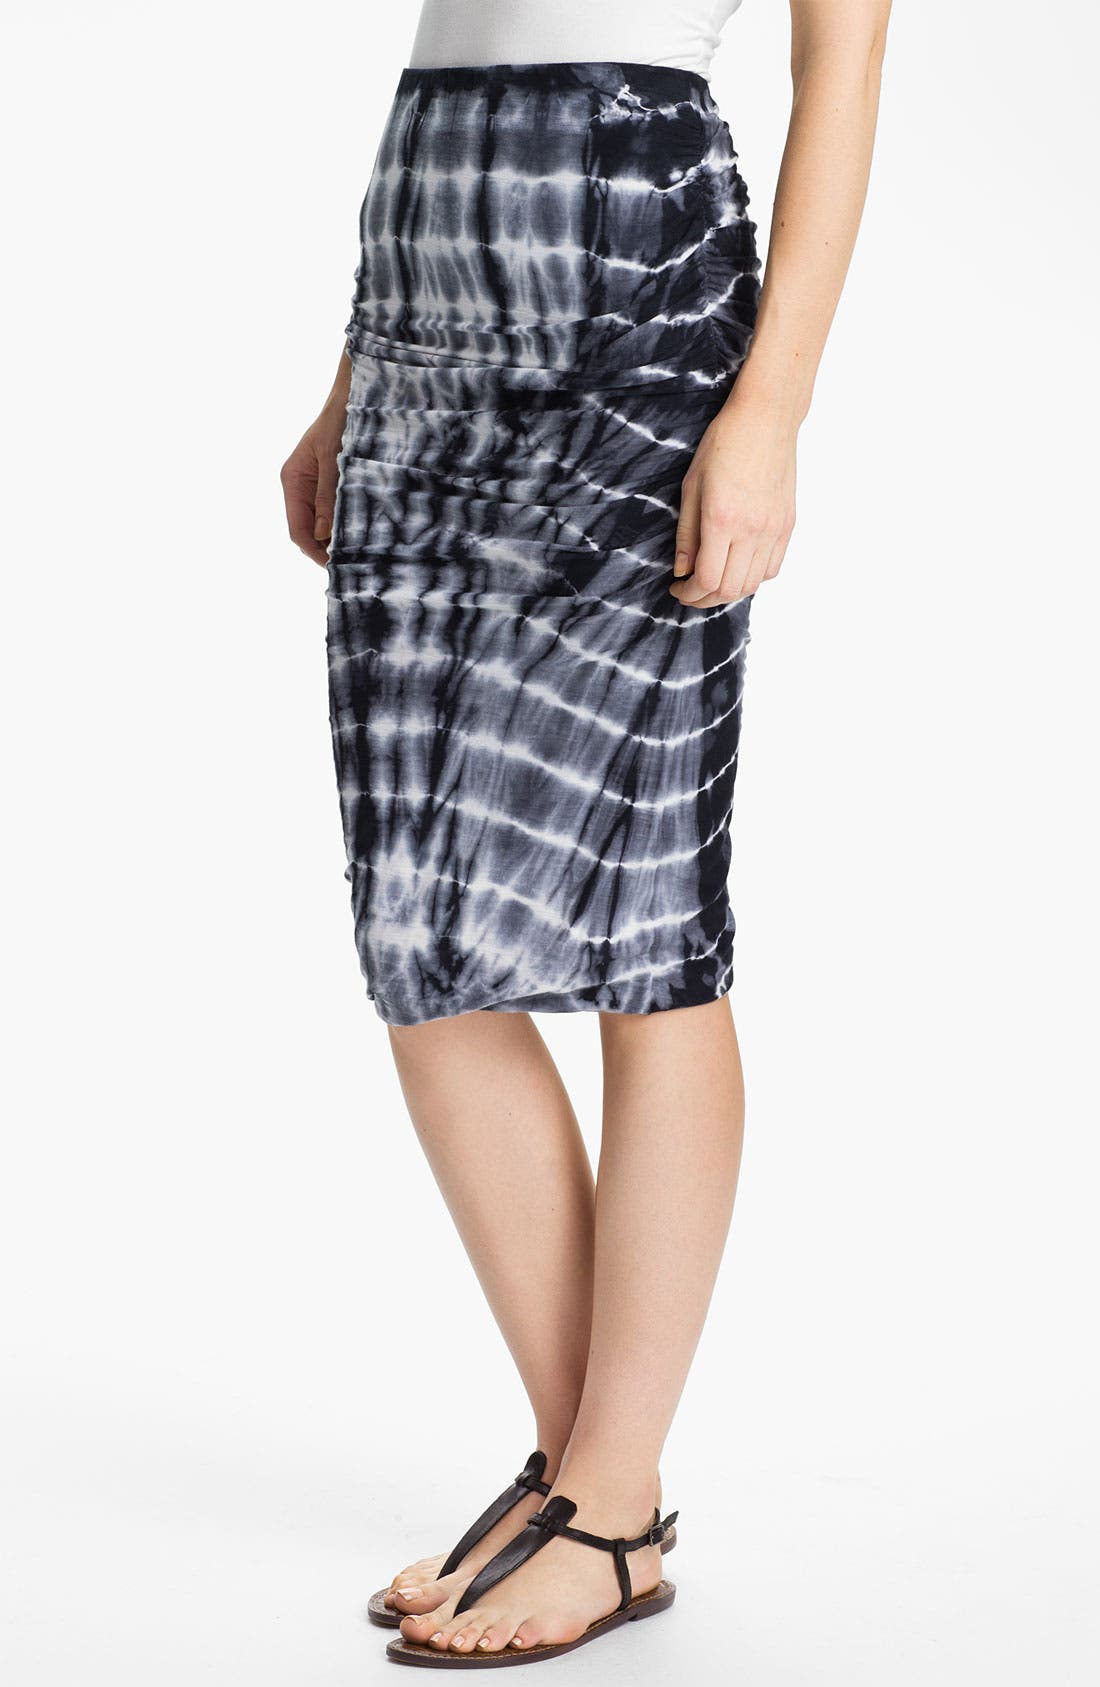 Alternate Image 1 Selected - James Perse Tie Dye Ruched Pencil Skirt